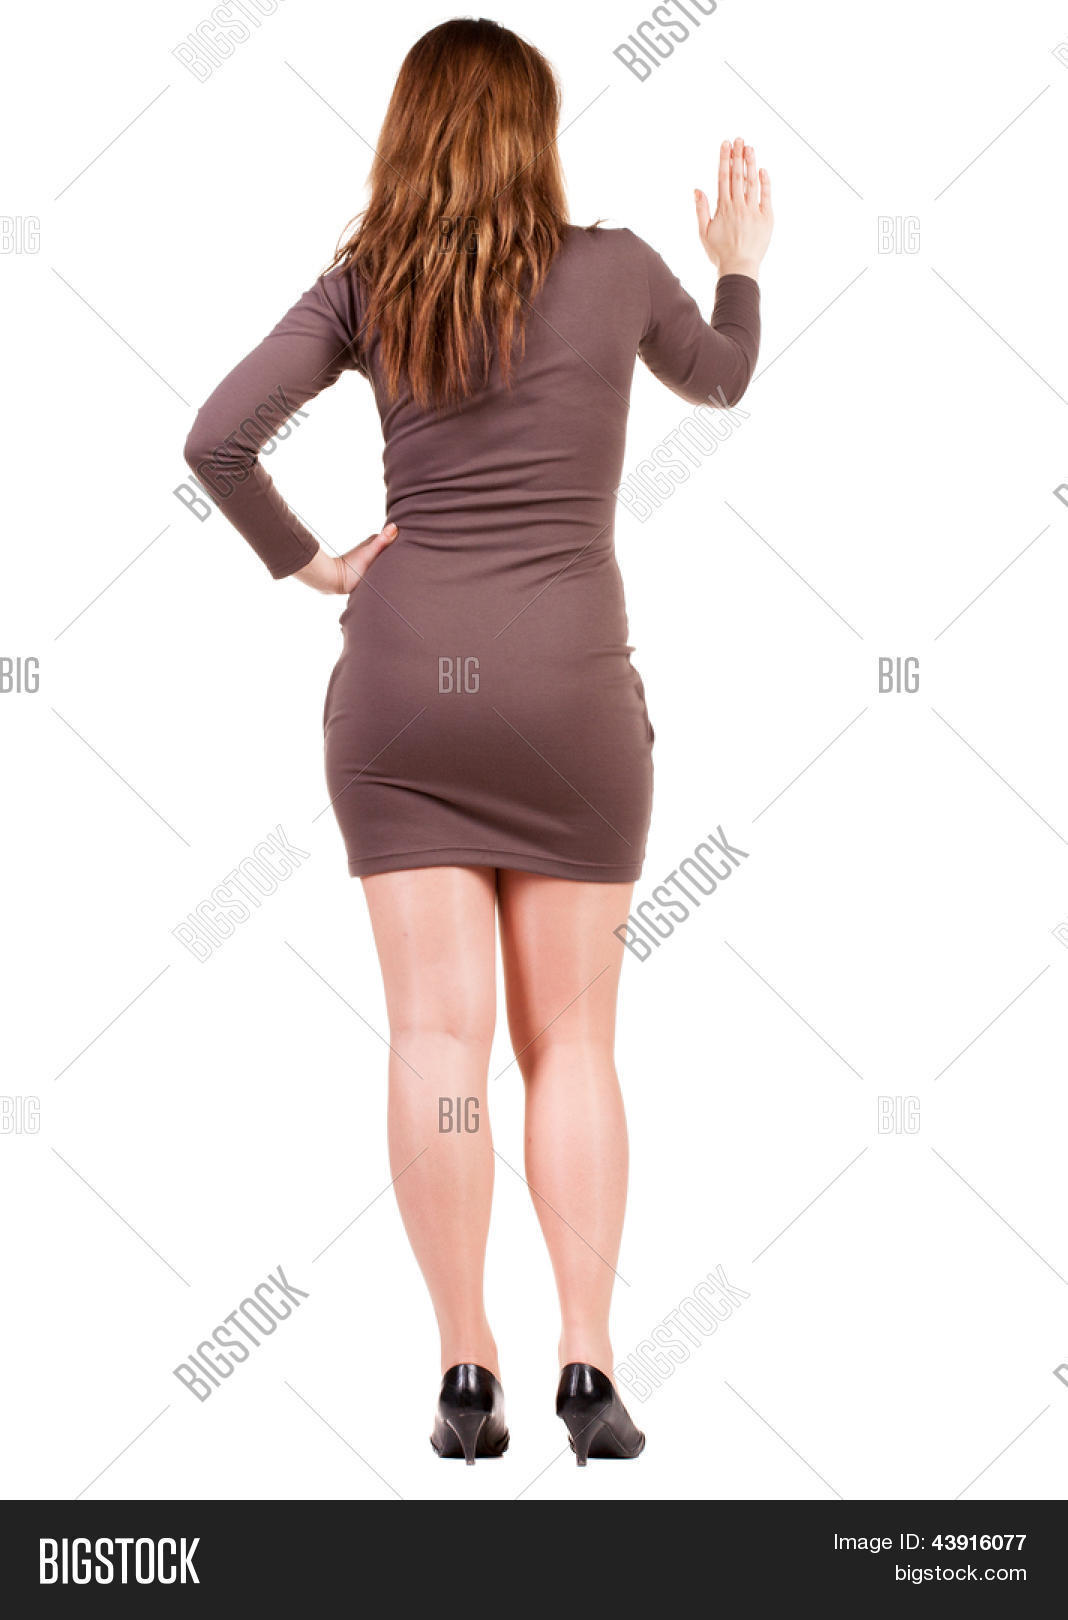 back view image photo free trial bigstock